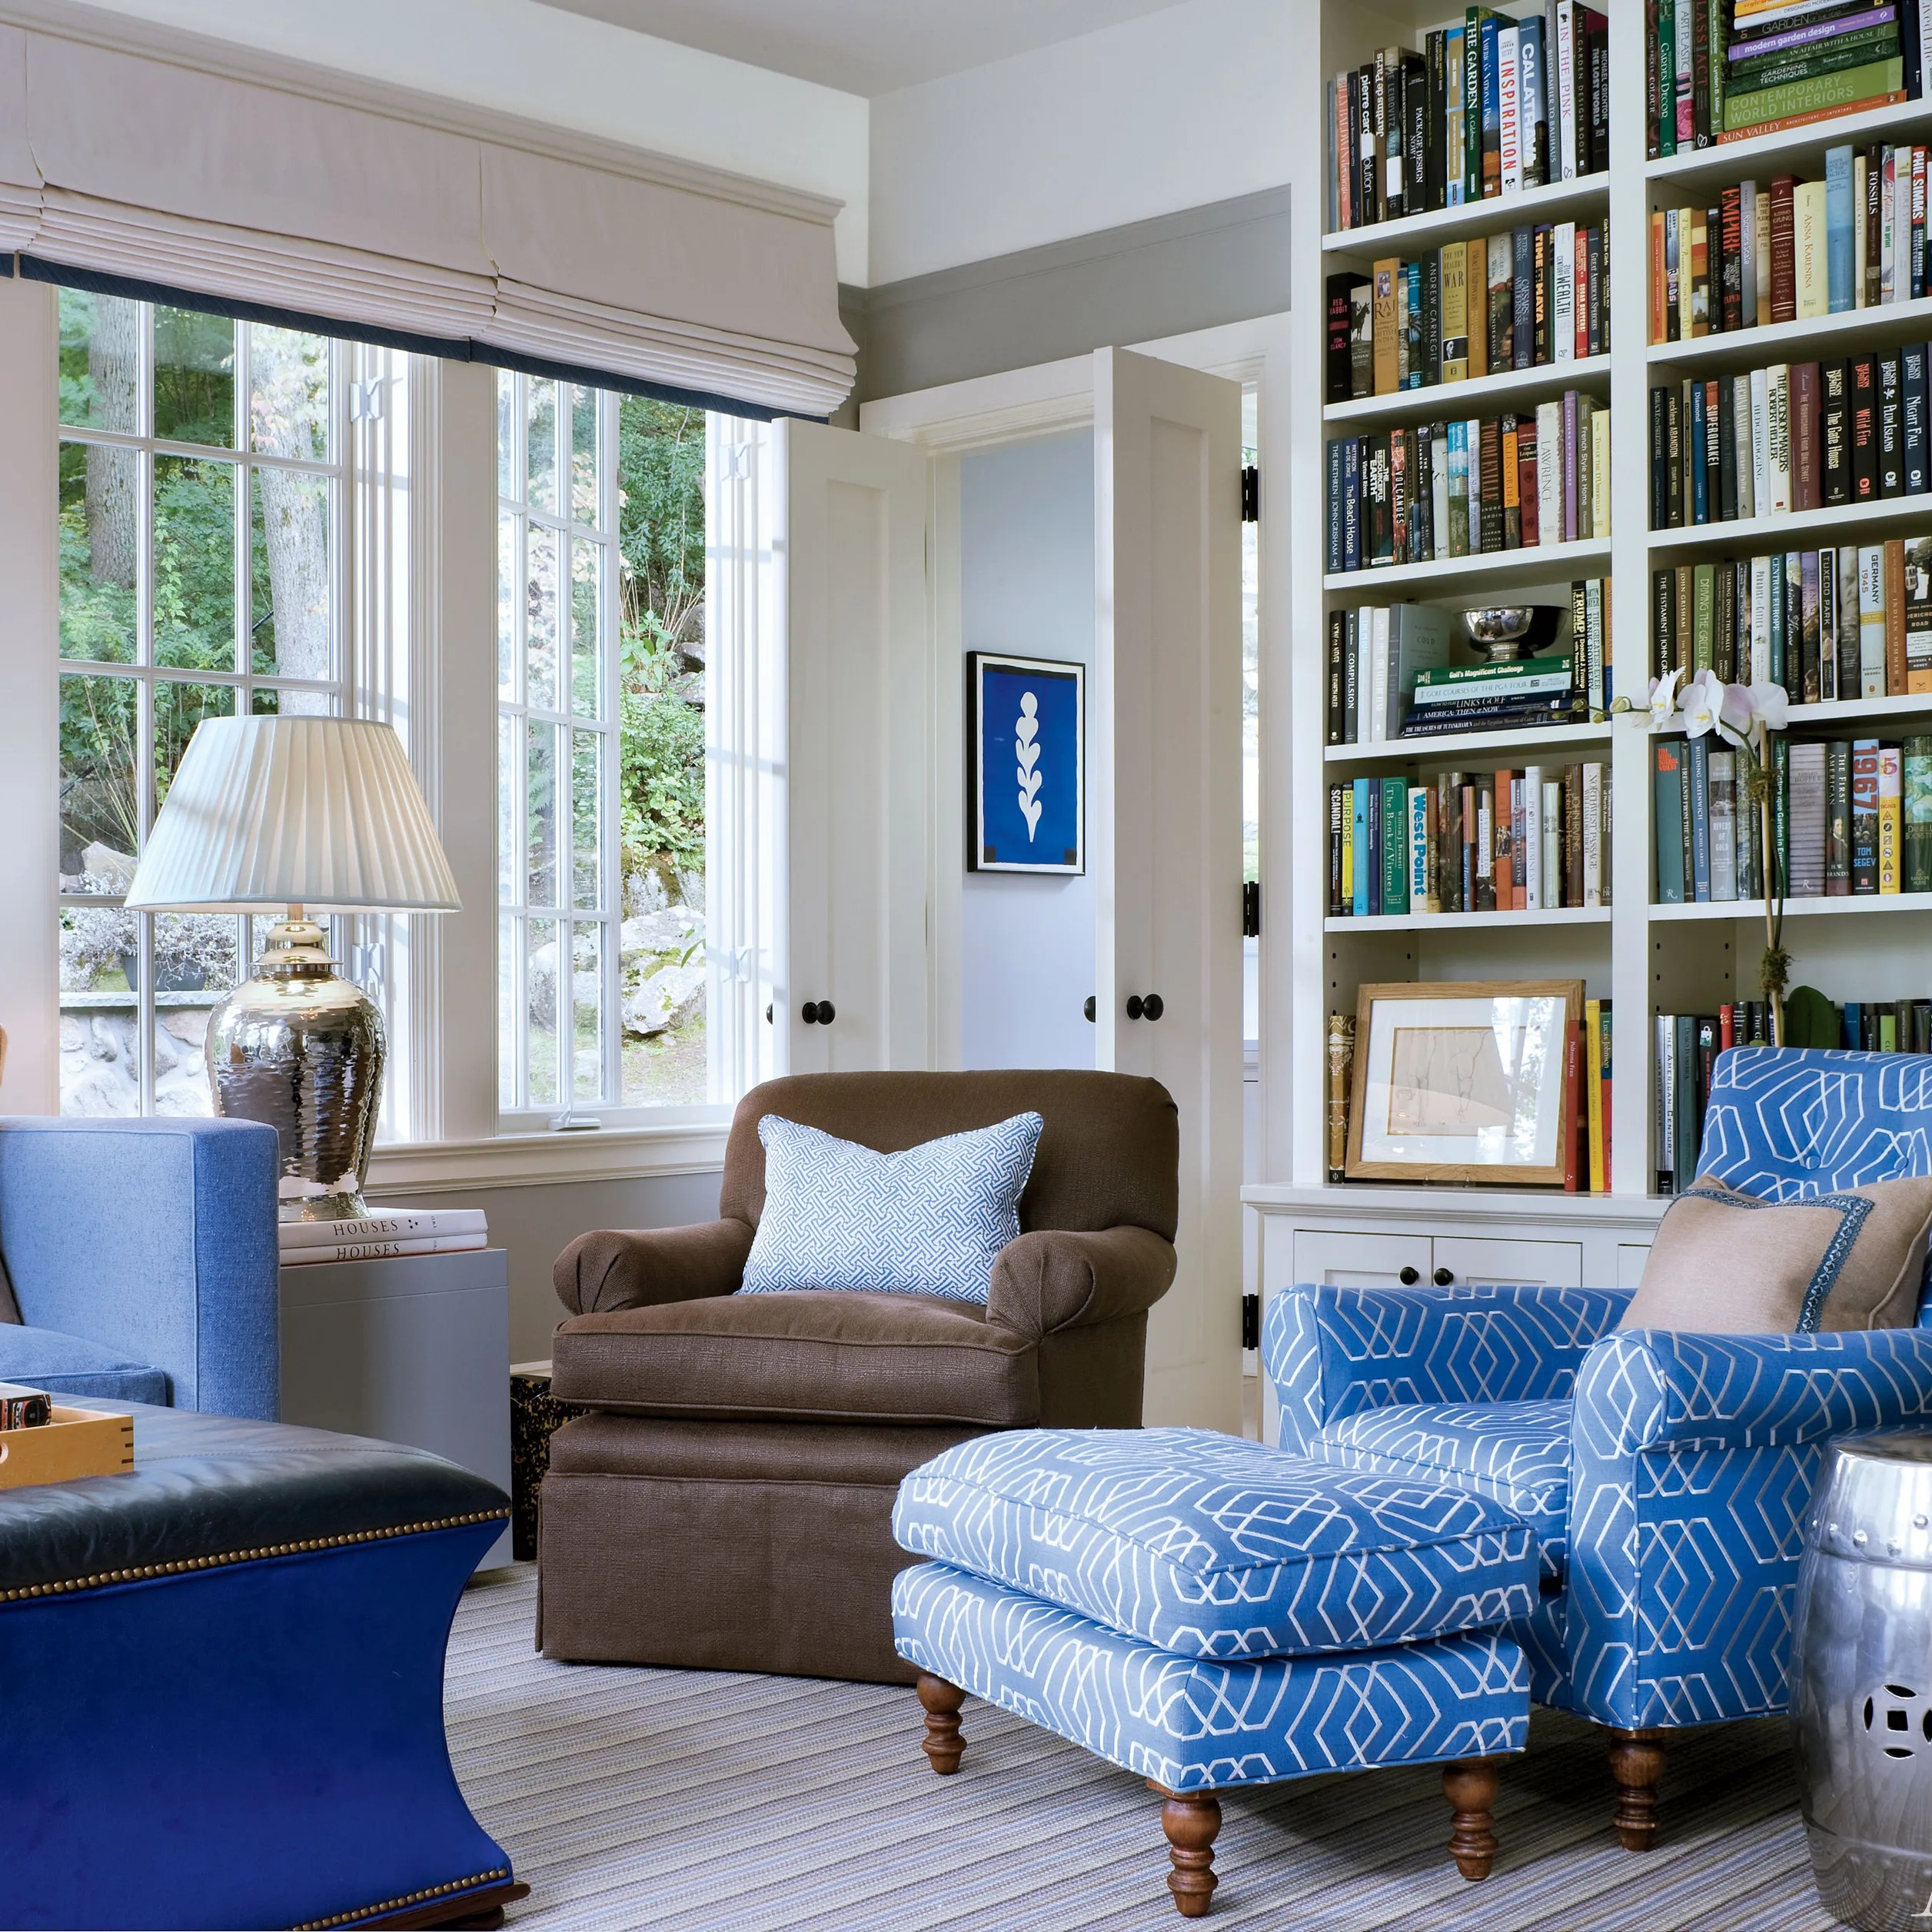 unique colors for living rooms decorating ideas room shelves 13 that utilize cool beautifully architectural digest